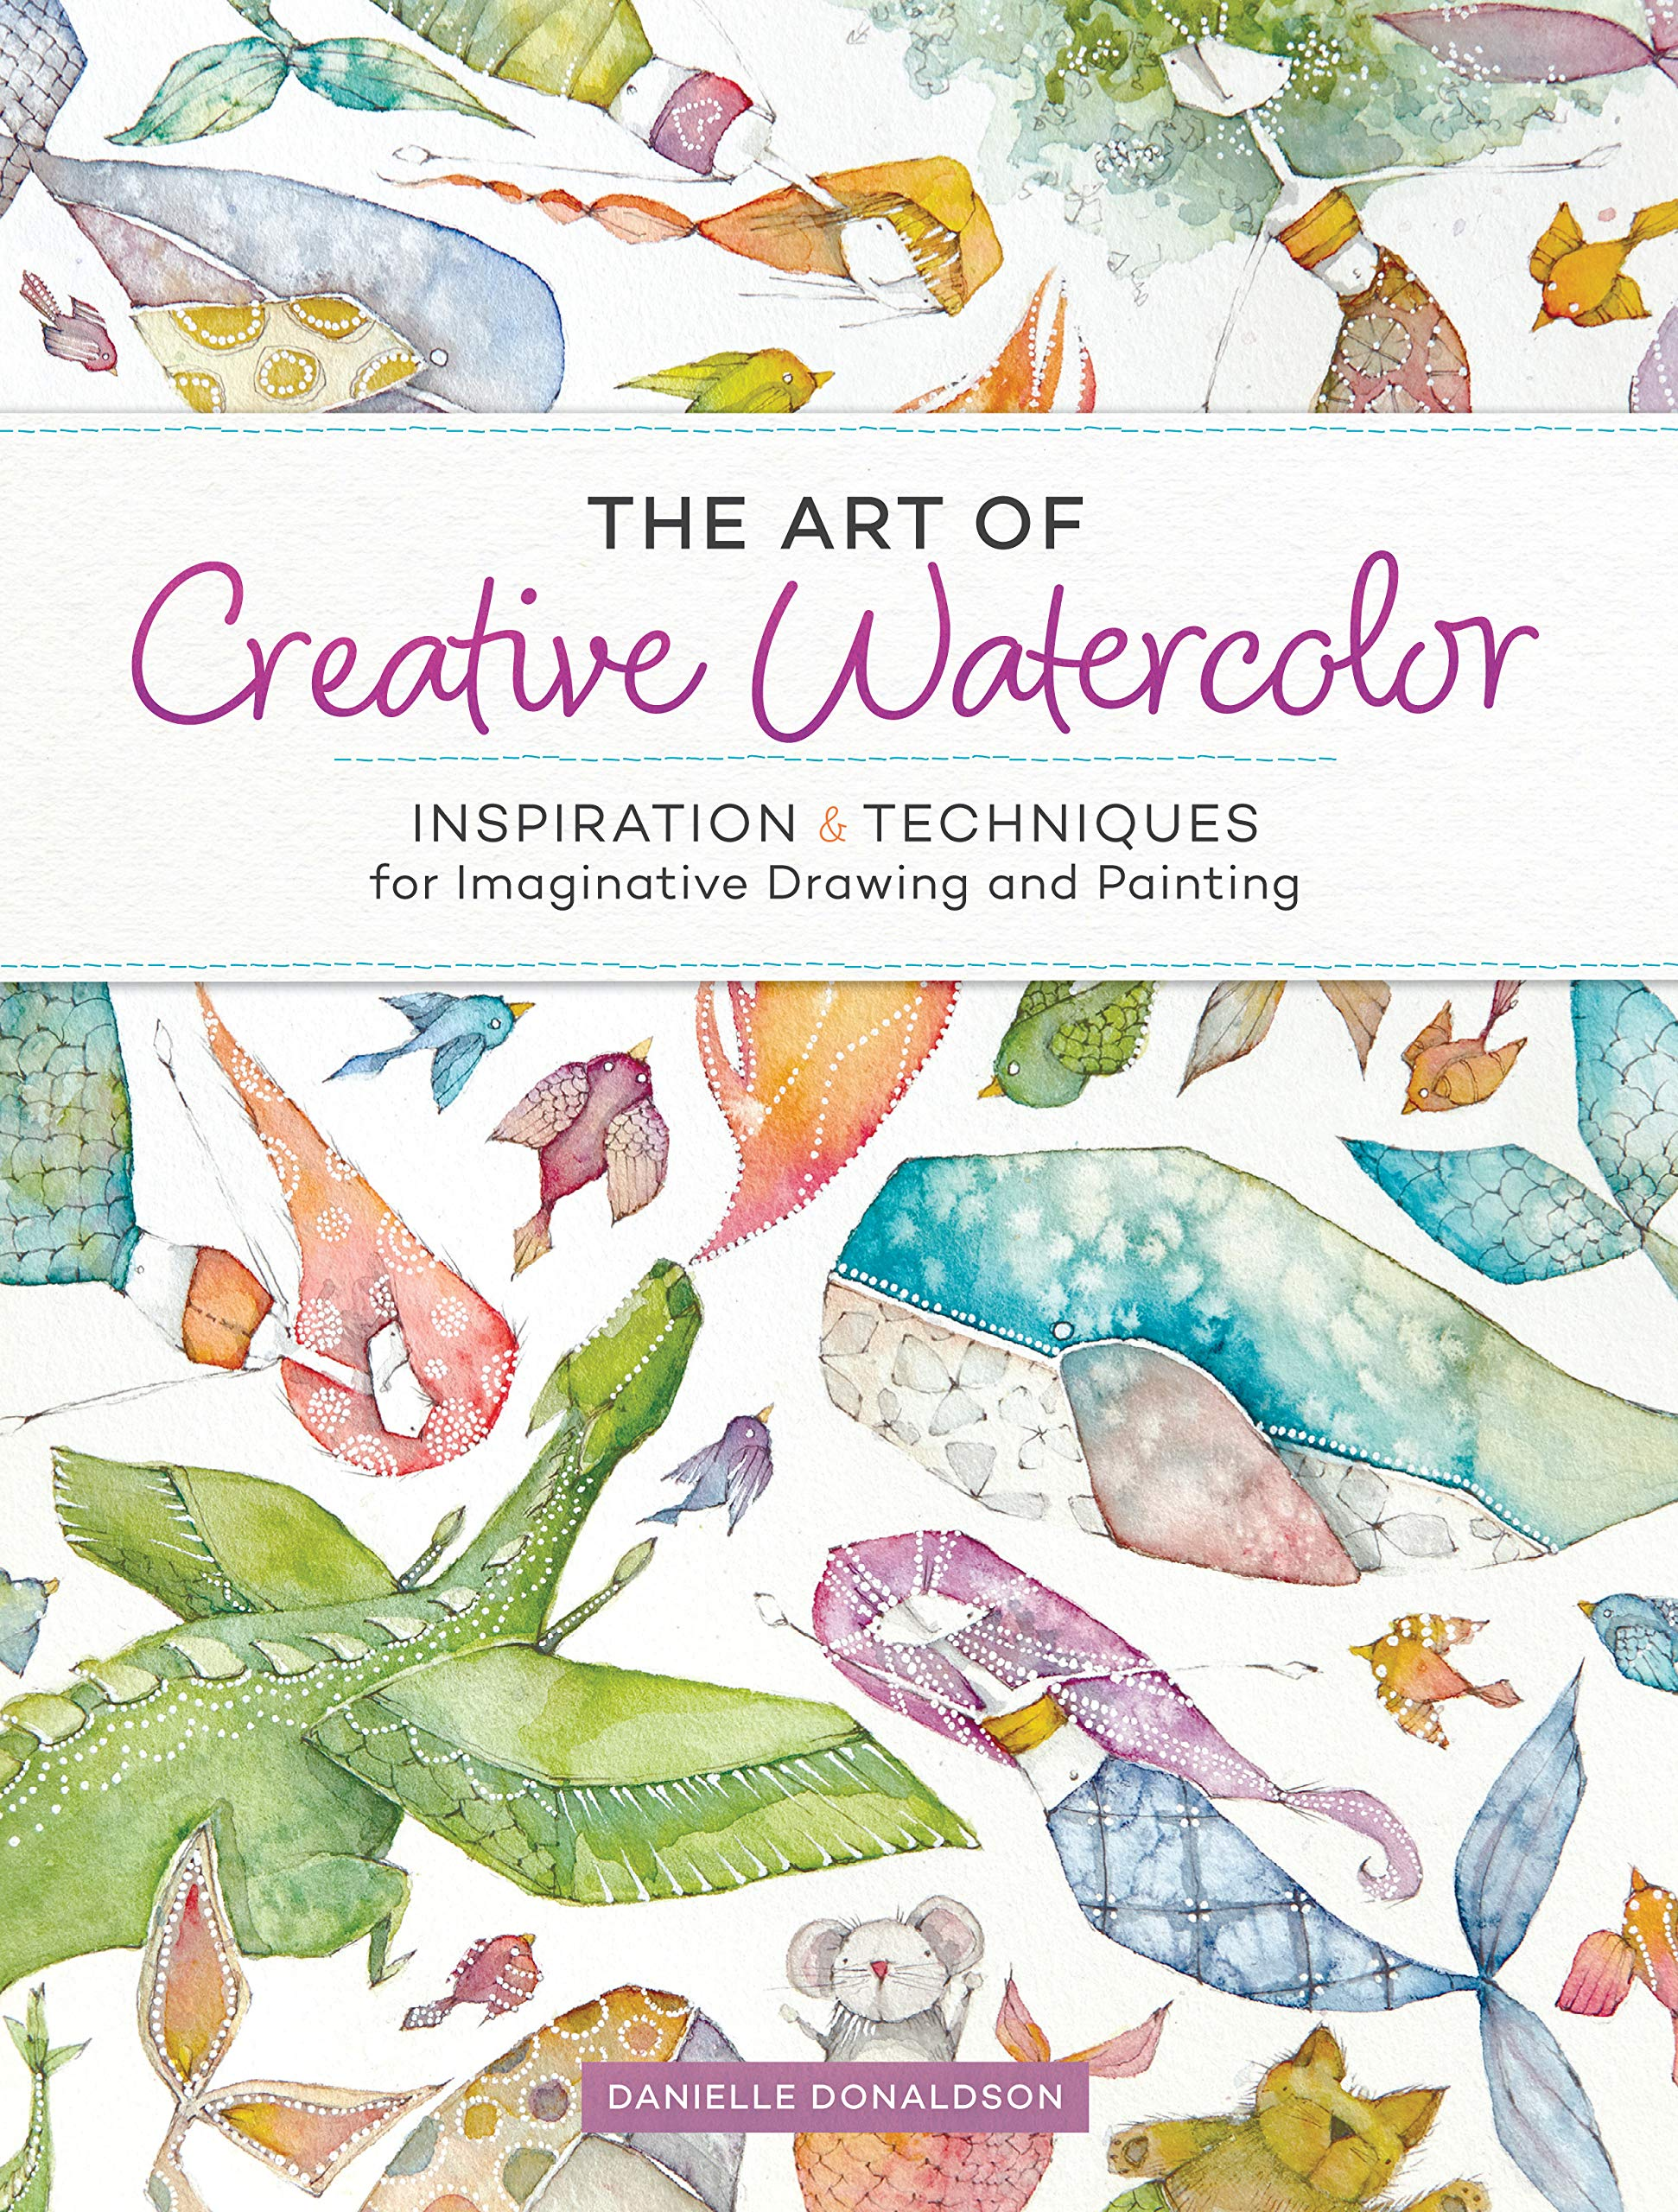 The Art of Creative Watercolor: Inspiration and Techniques for Imaginative Drawing and Painting (English Edition)